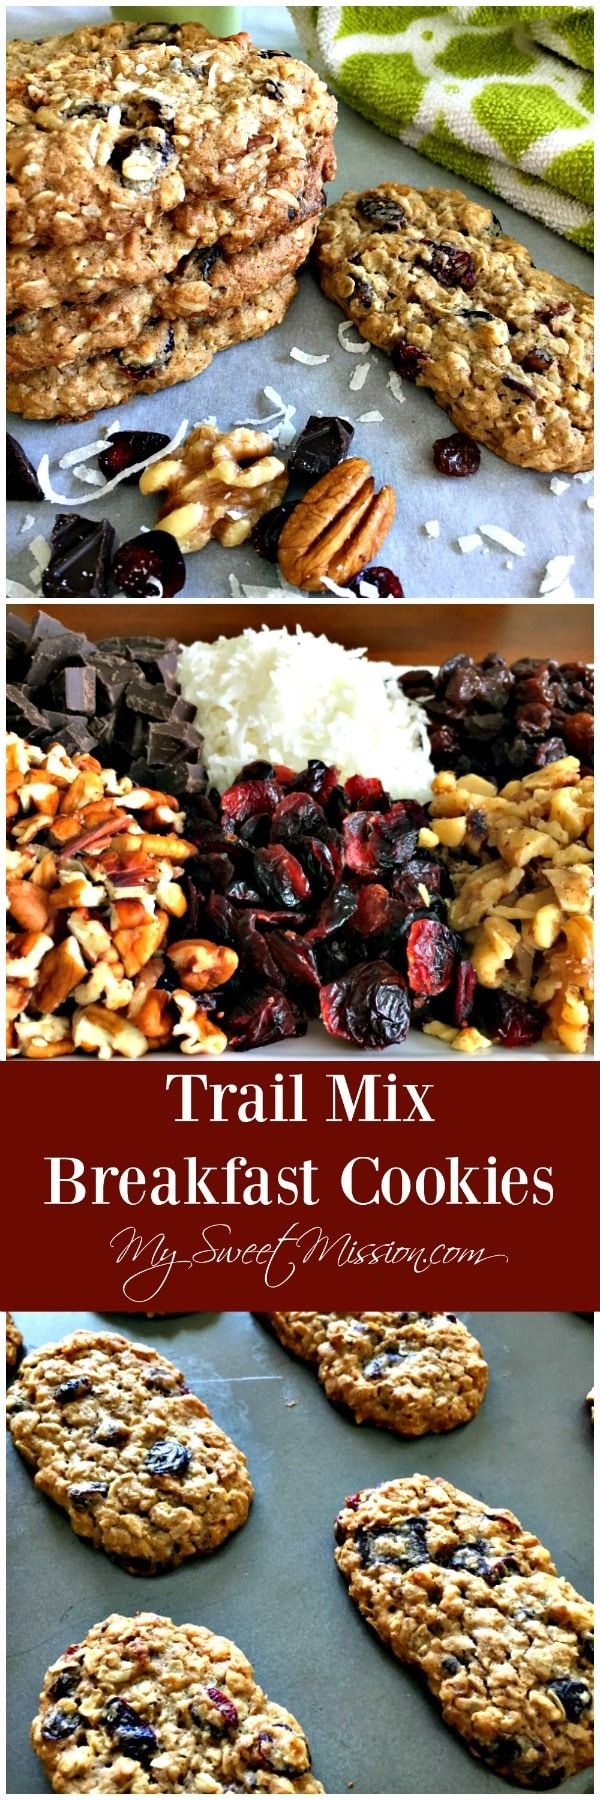 Cookies for breakfast? Oh - yeah! Because our Trail Mix Breakfast Cookies are packed with heart-healthy oats, crunchy nuts, soft raisins, tart cranberries, sweet coconut and rich, dark chocolate. You know, pretty much what everyone loves about trail mix!